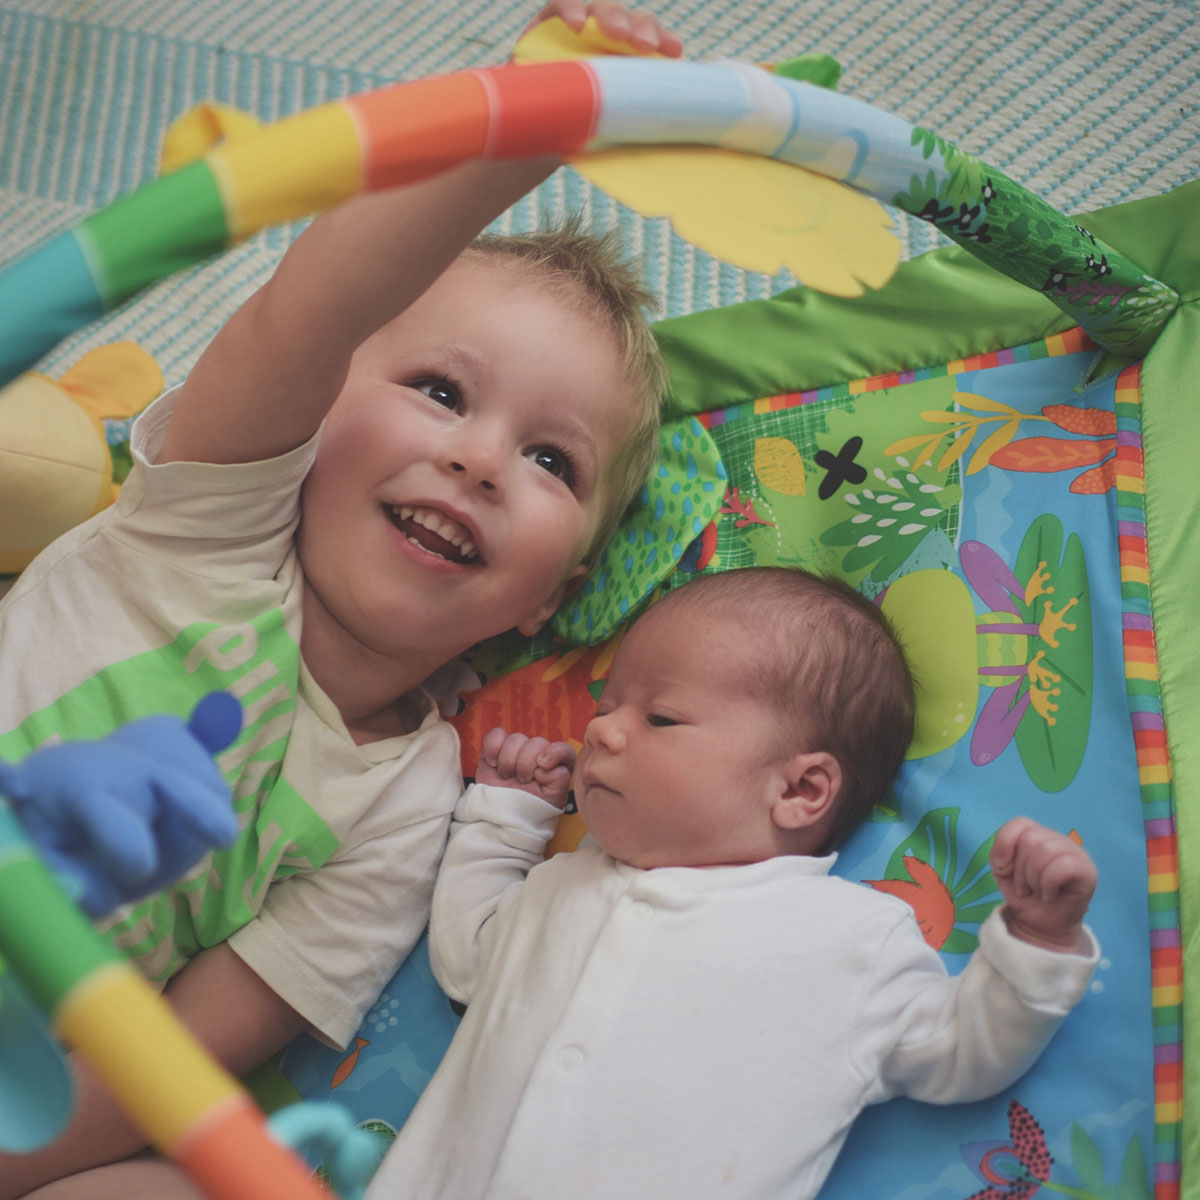 Our month in insta-snaps; September 2016 - Newborn baby and his toddler brother playing together on the Fisher-price rainforest deluxe music & lights activity gym